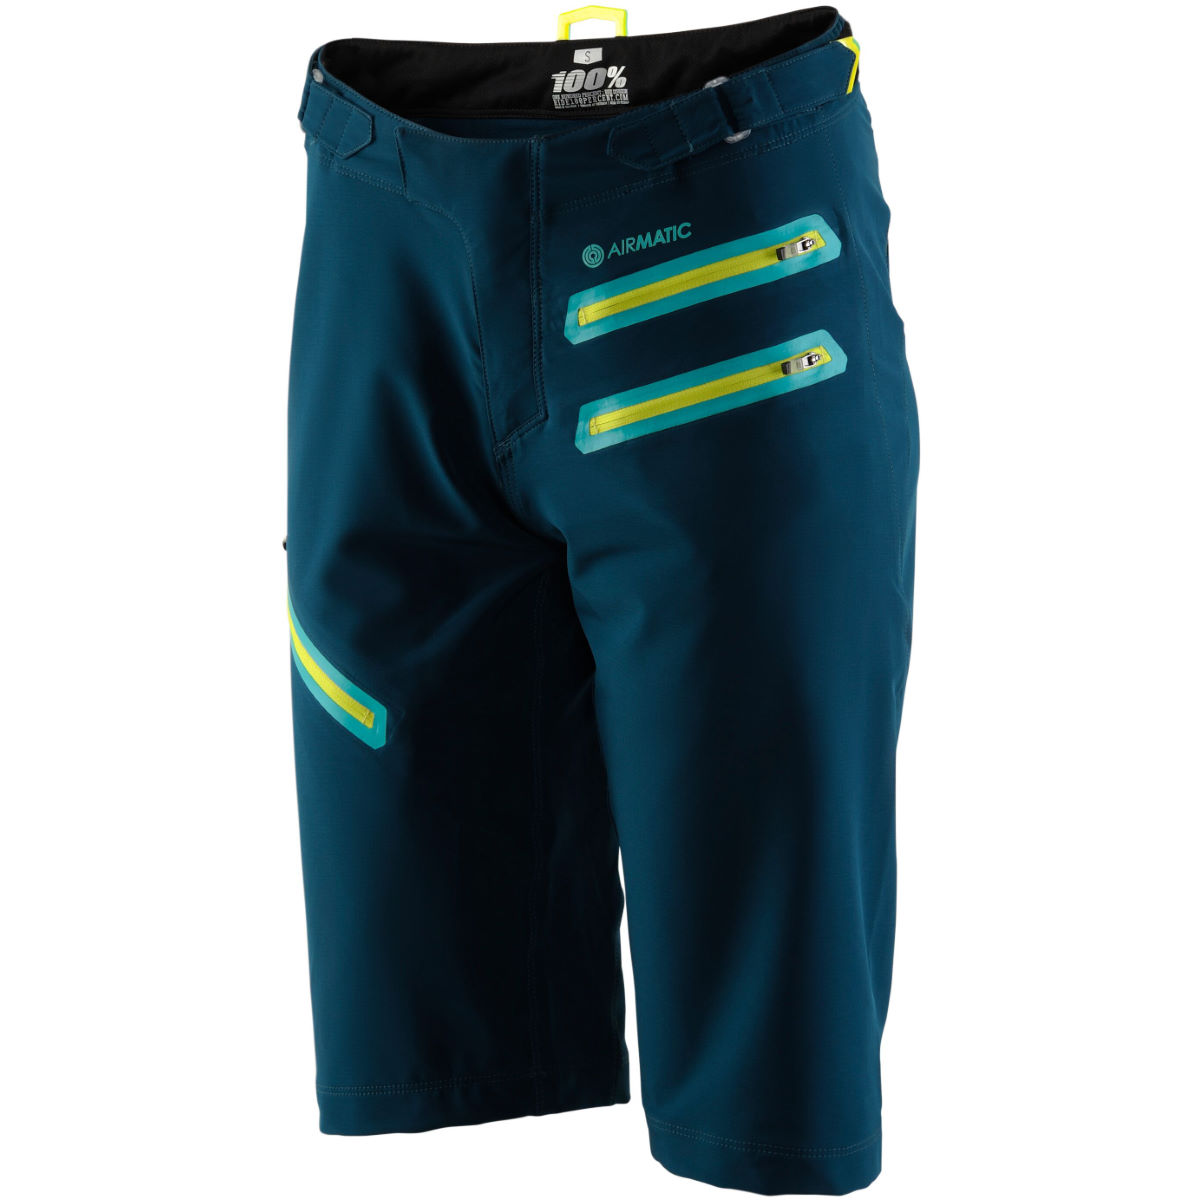 Short Femme 100% Airmatic - XL Forest Green Shorts VTT